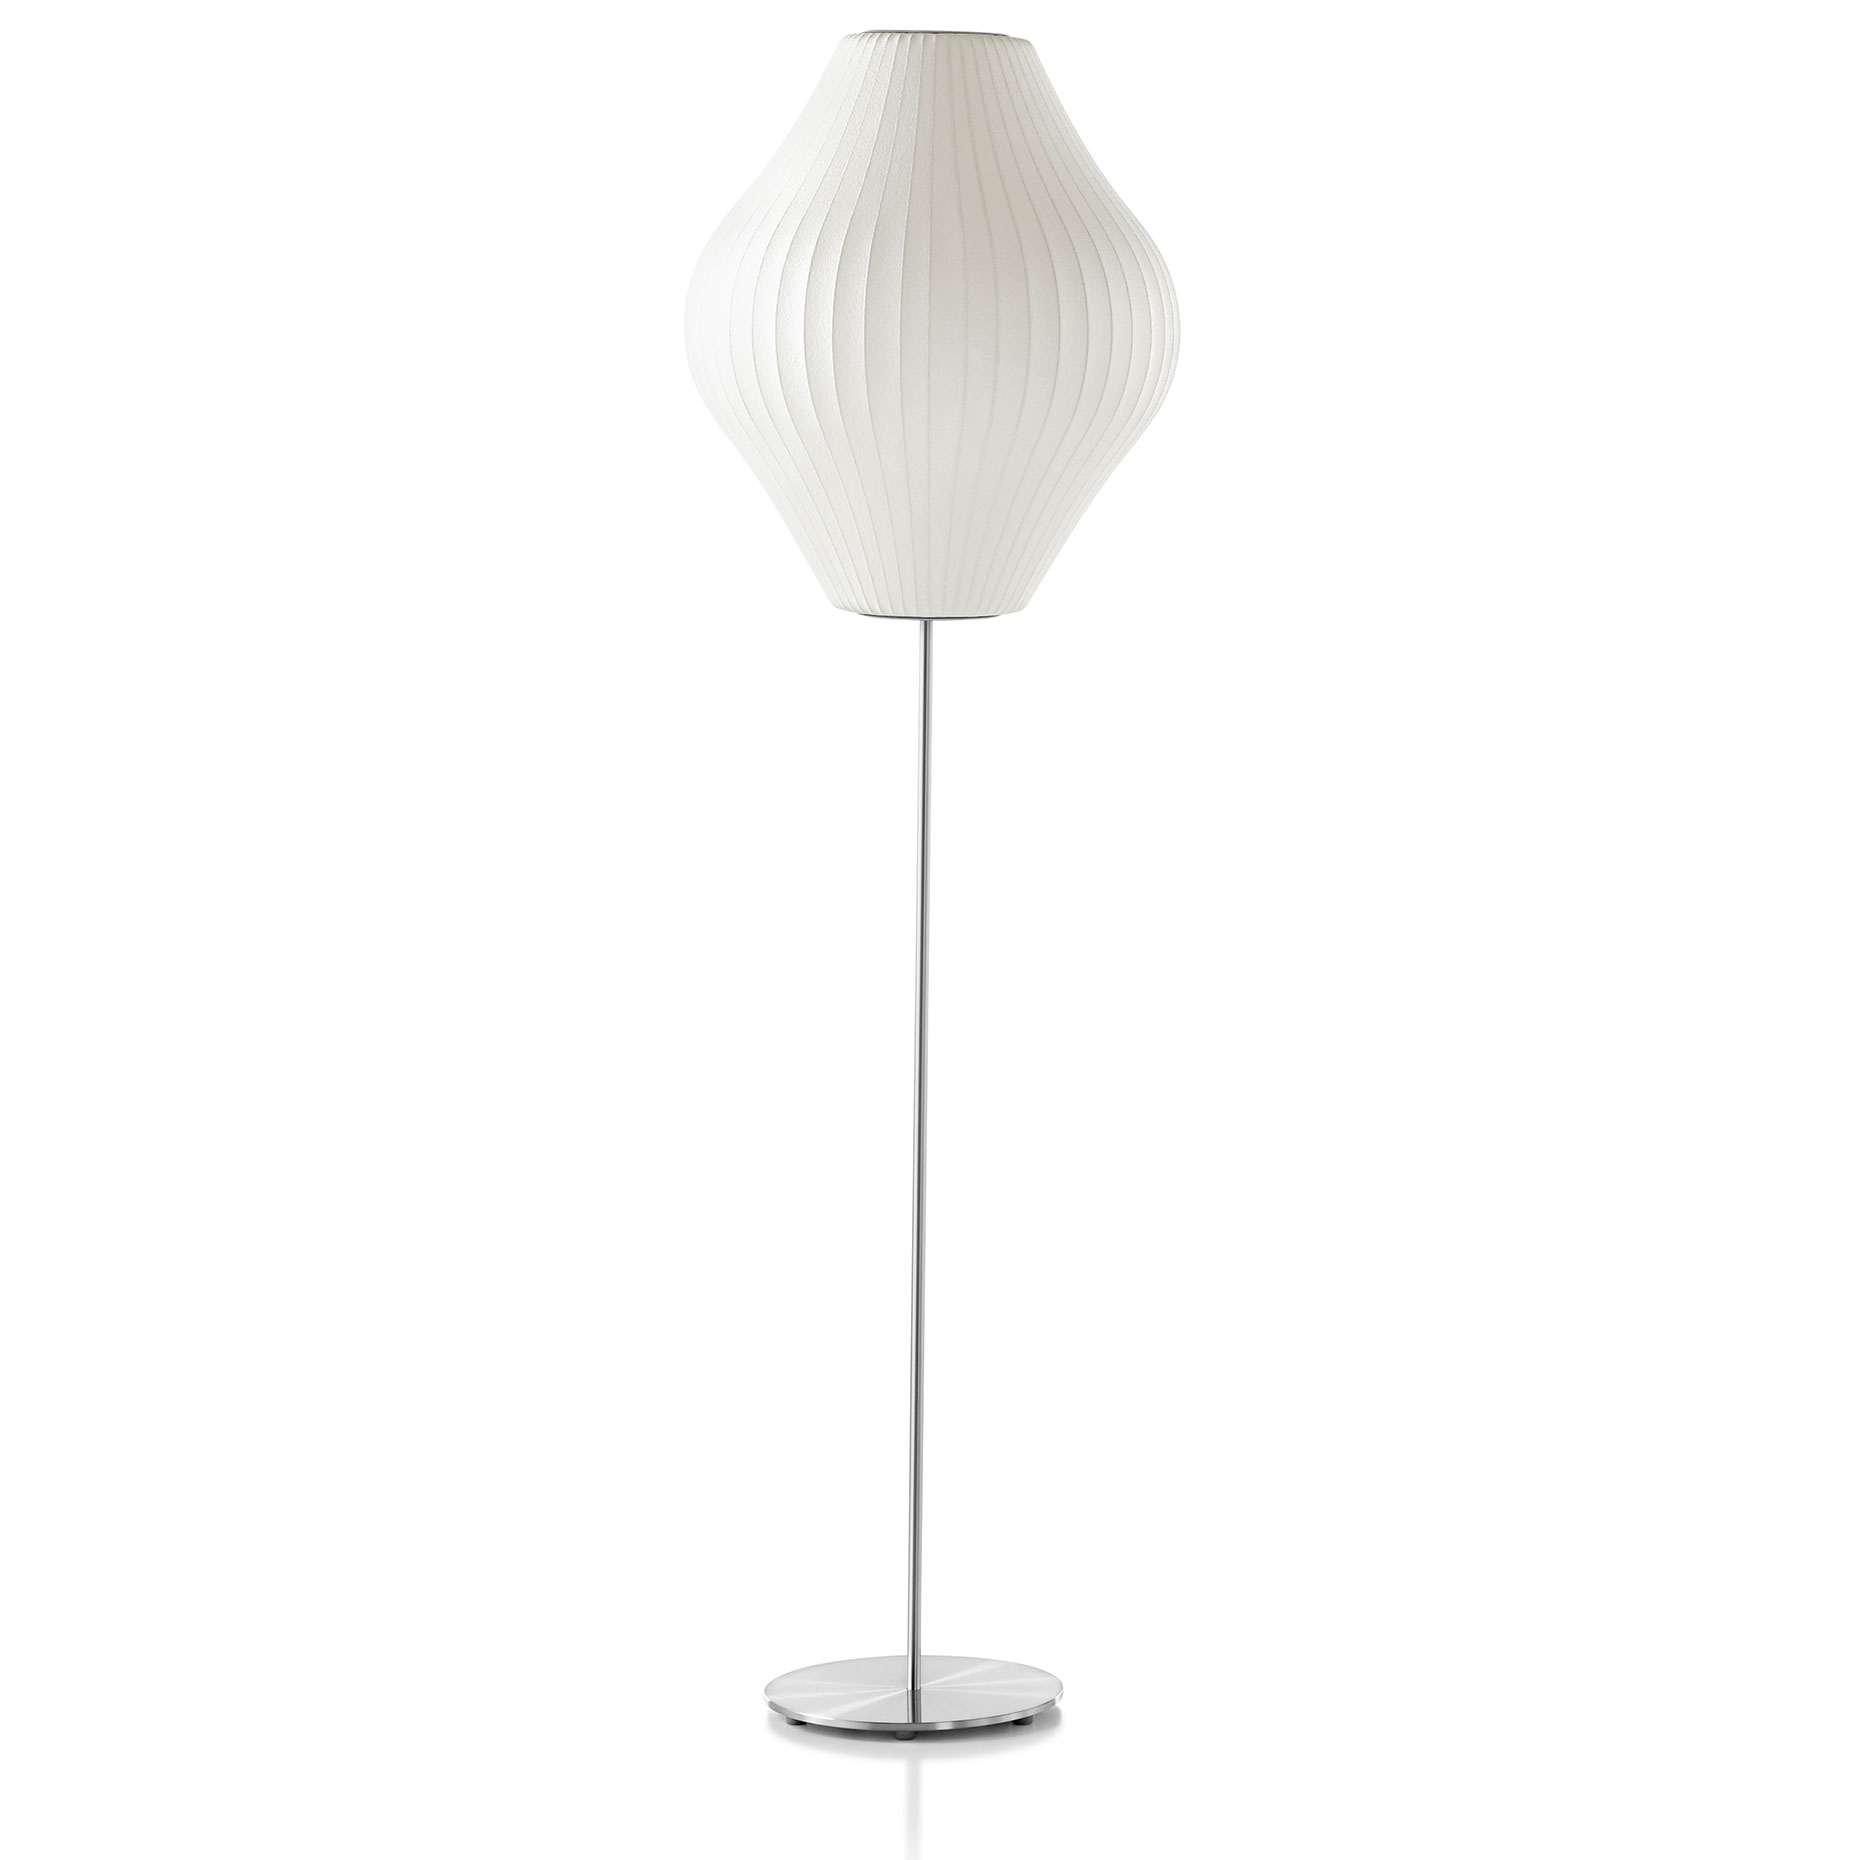 Pear lotus floor lamp by george nelson by modernica pear for Lotus floor lamp white